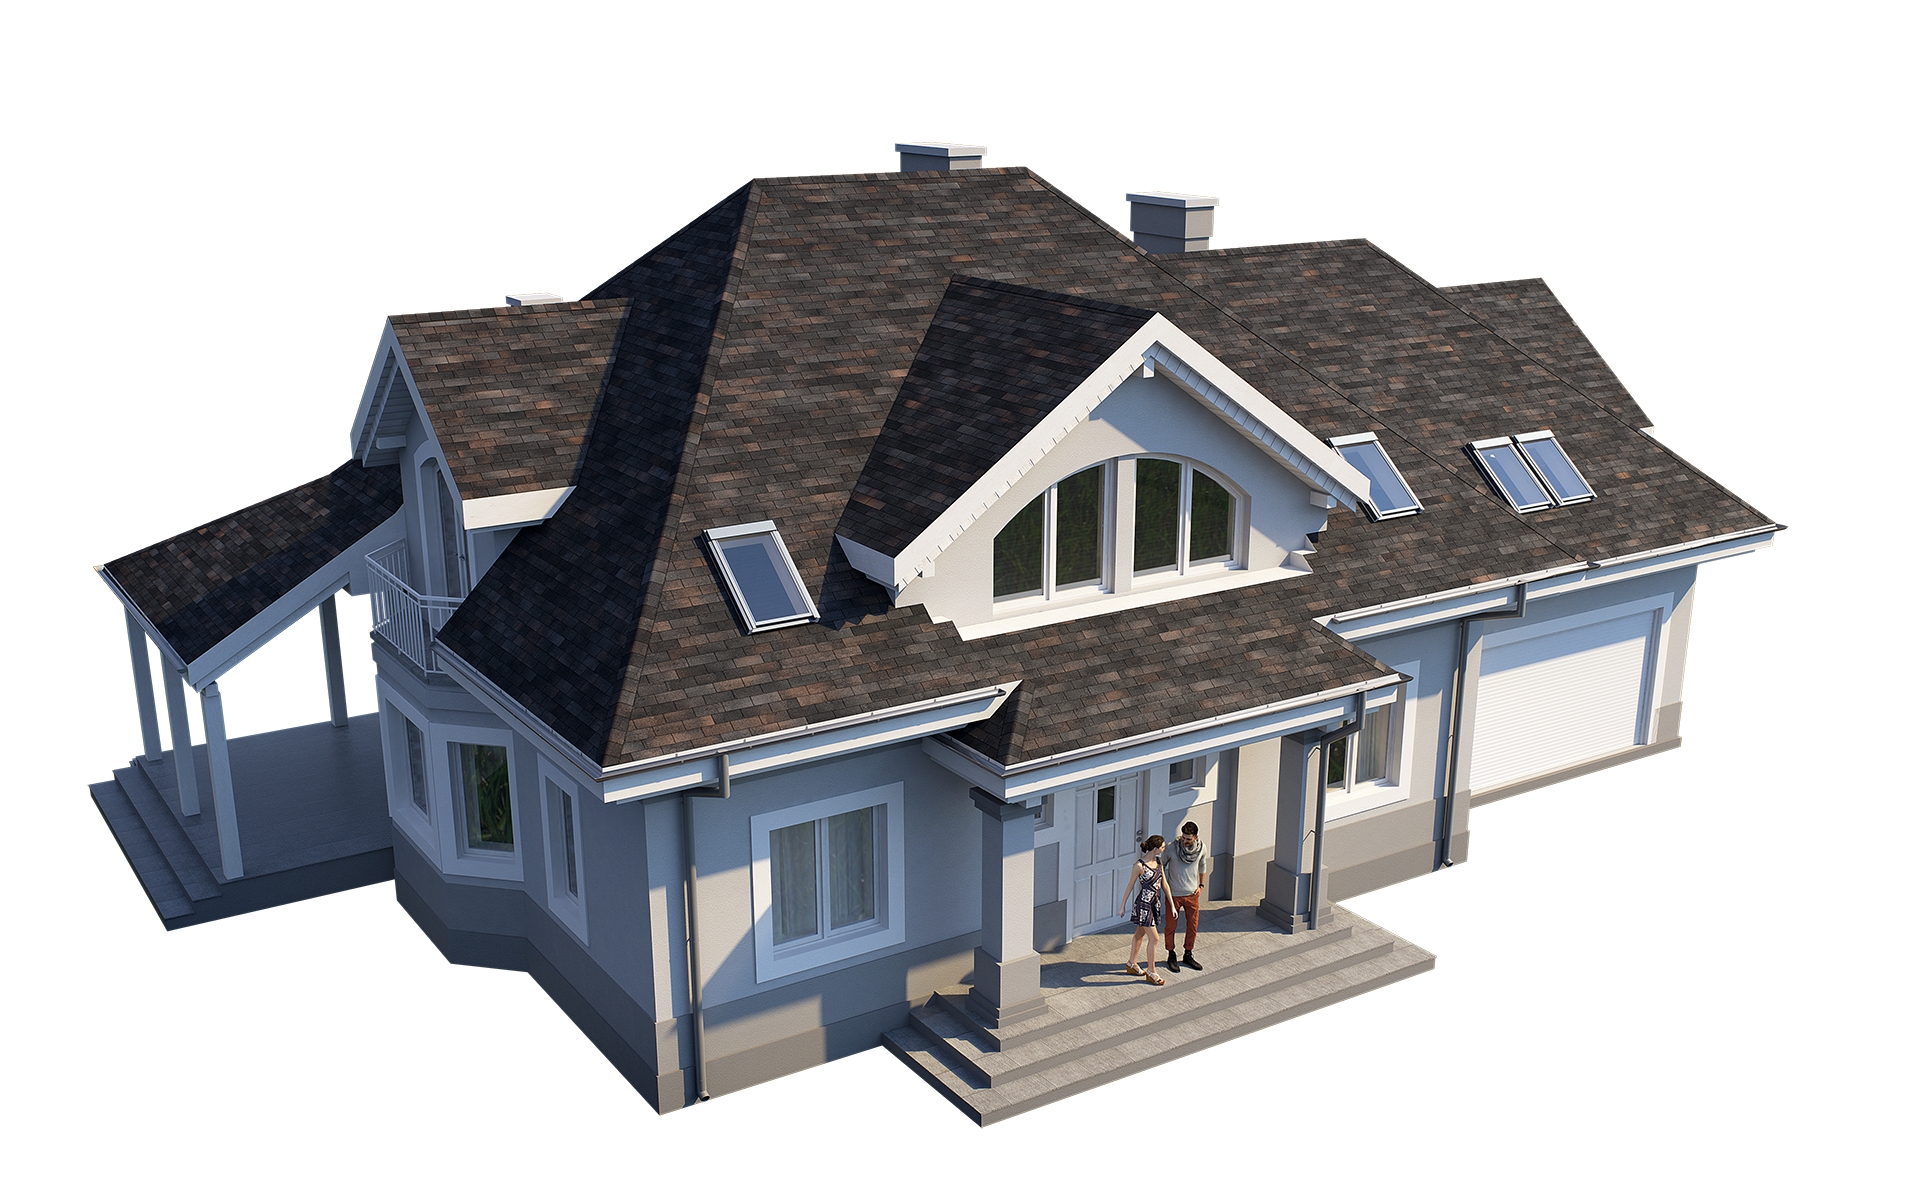 3-tab asphalt roof shingles preset for 3dsmax and RailClone on a 3D model of a House. Rendered with vray, made for arch-viz.